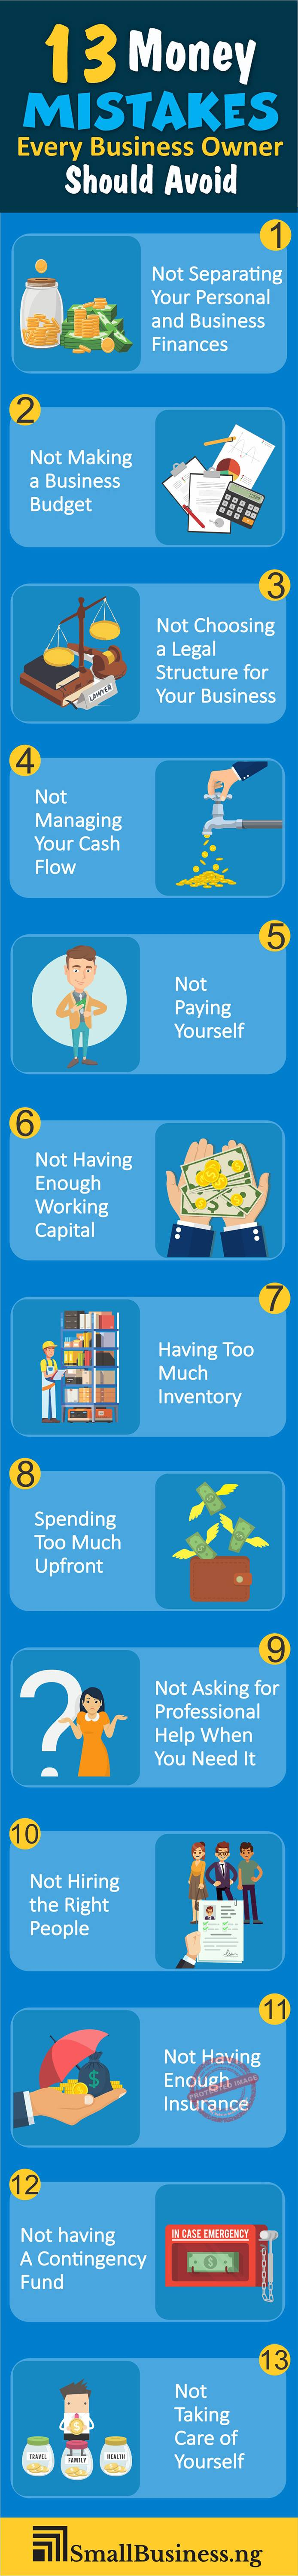 13 Money Mistakes Every Business Owner Should Avoid Infographic